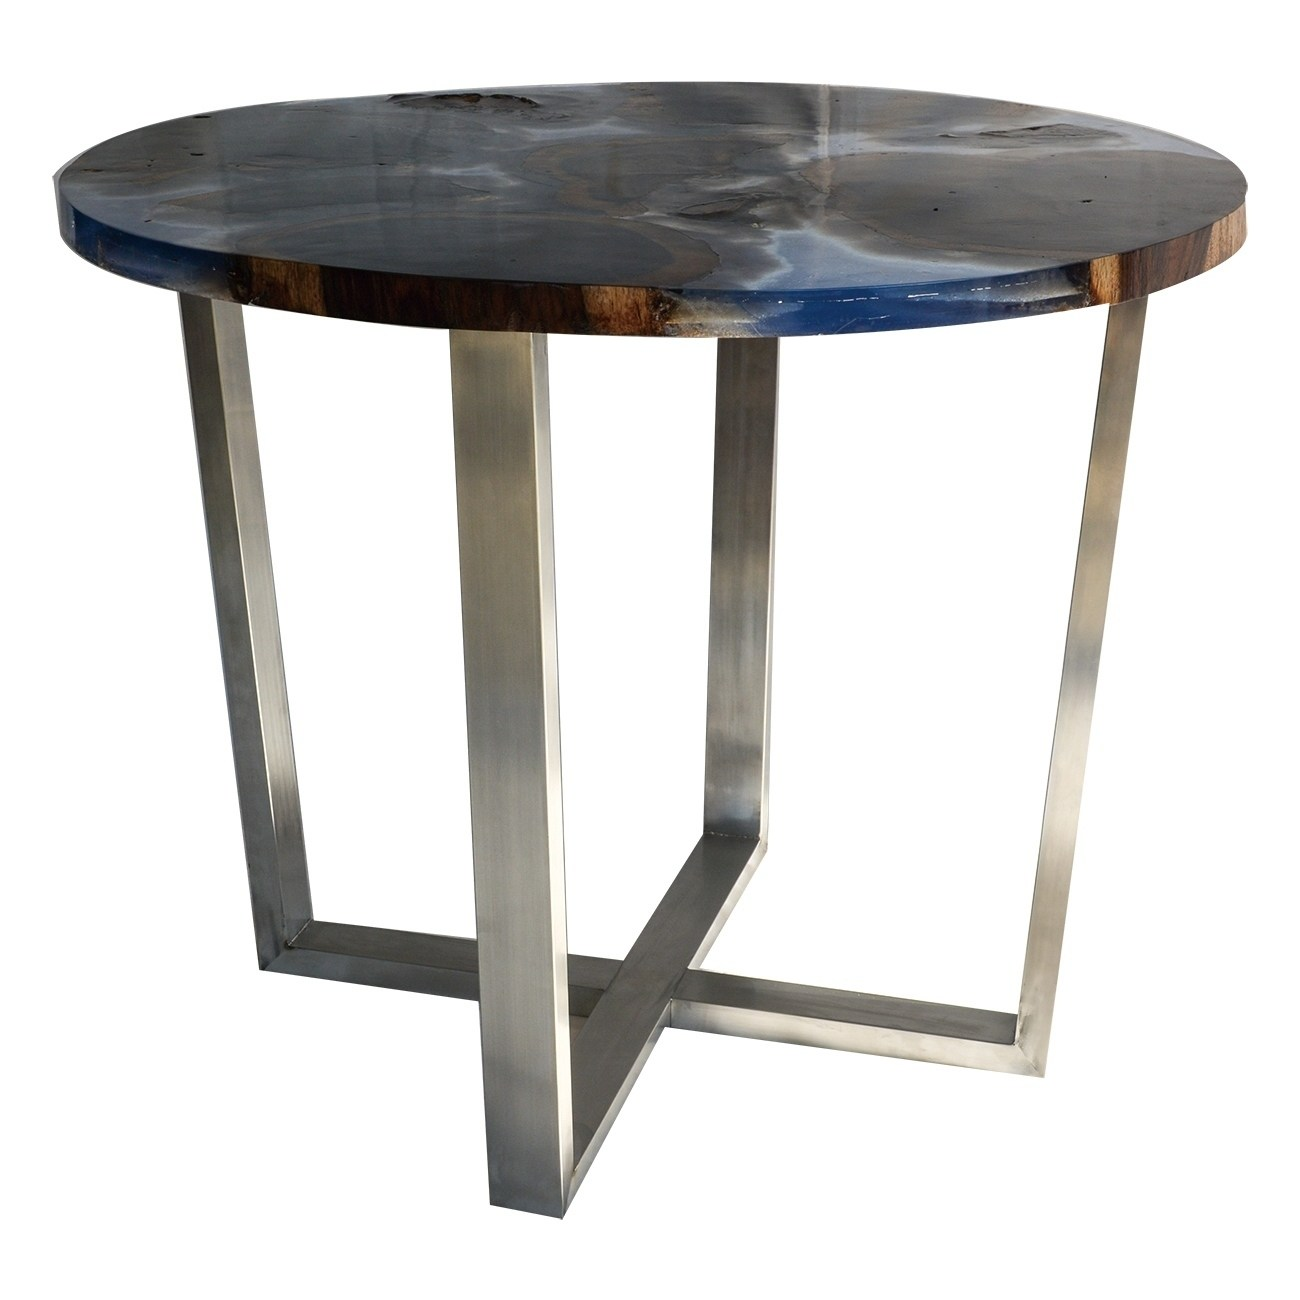 a b home round wood tall coffee table with blue resin and steel legs